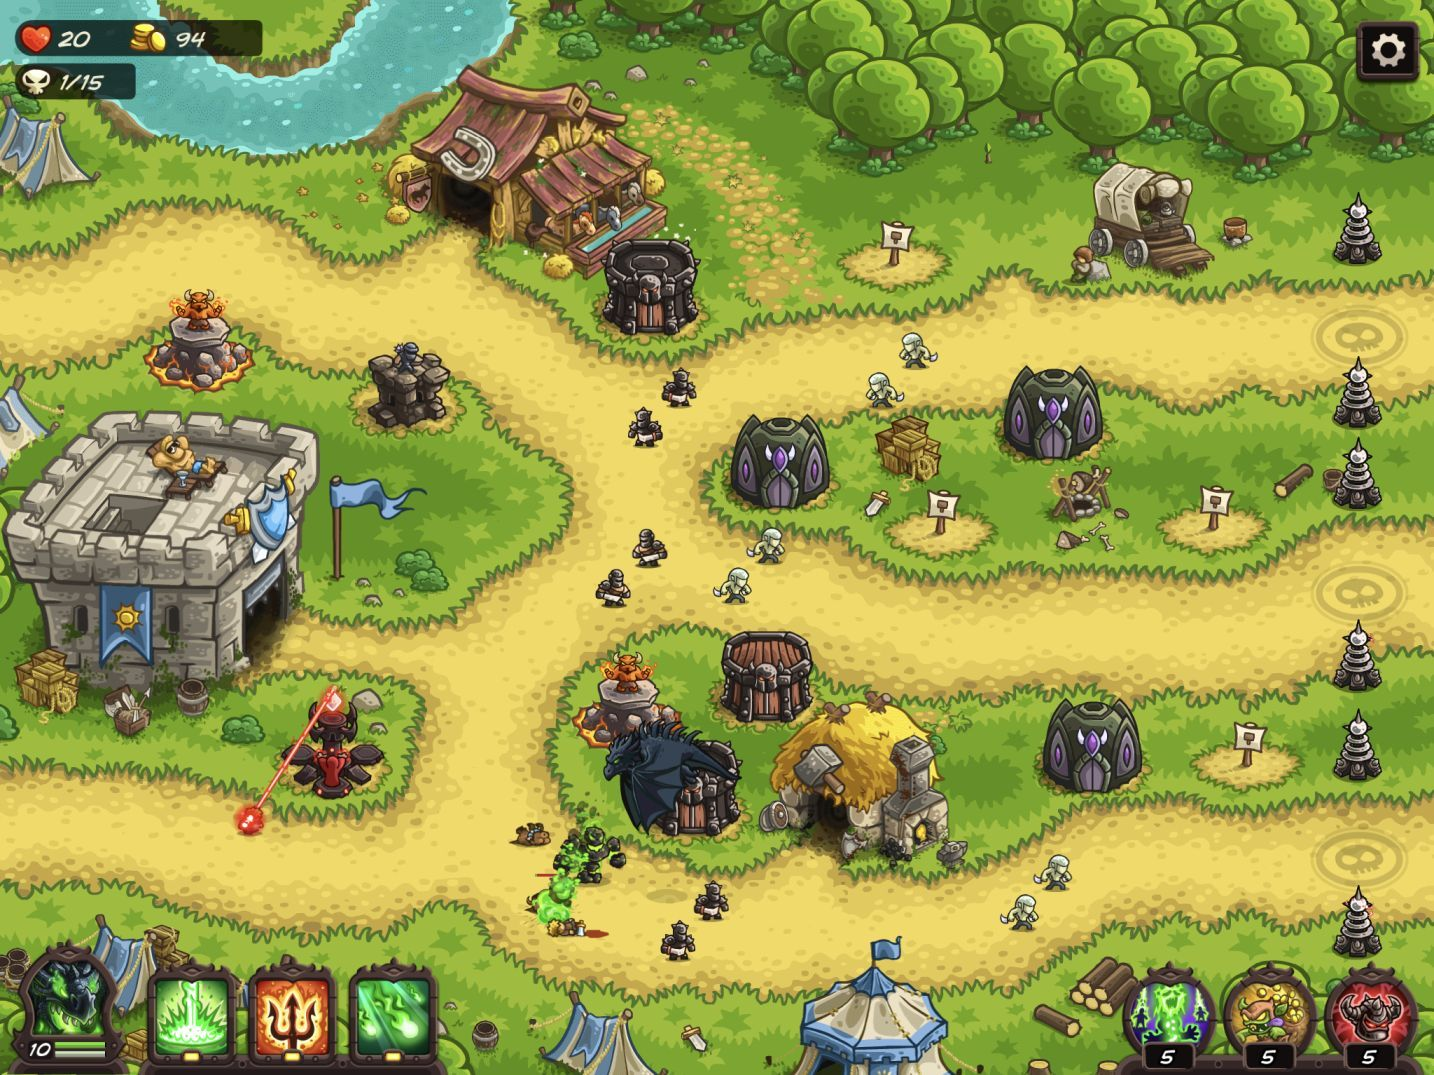 Kingdom Rush Vengeance (copie d'écran 21 sur iPhone / iPad)